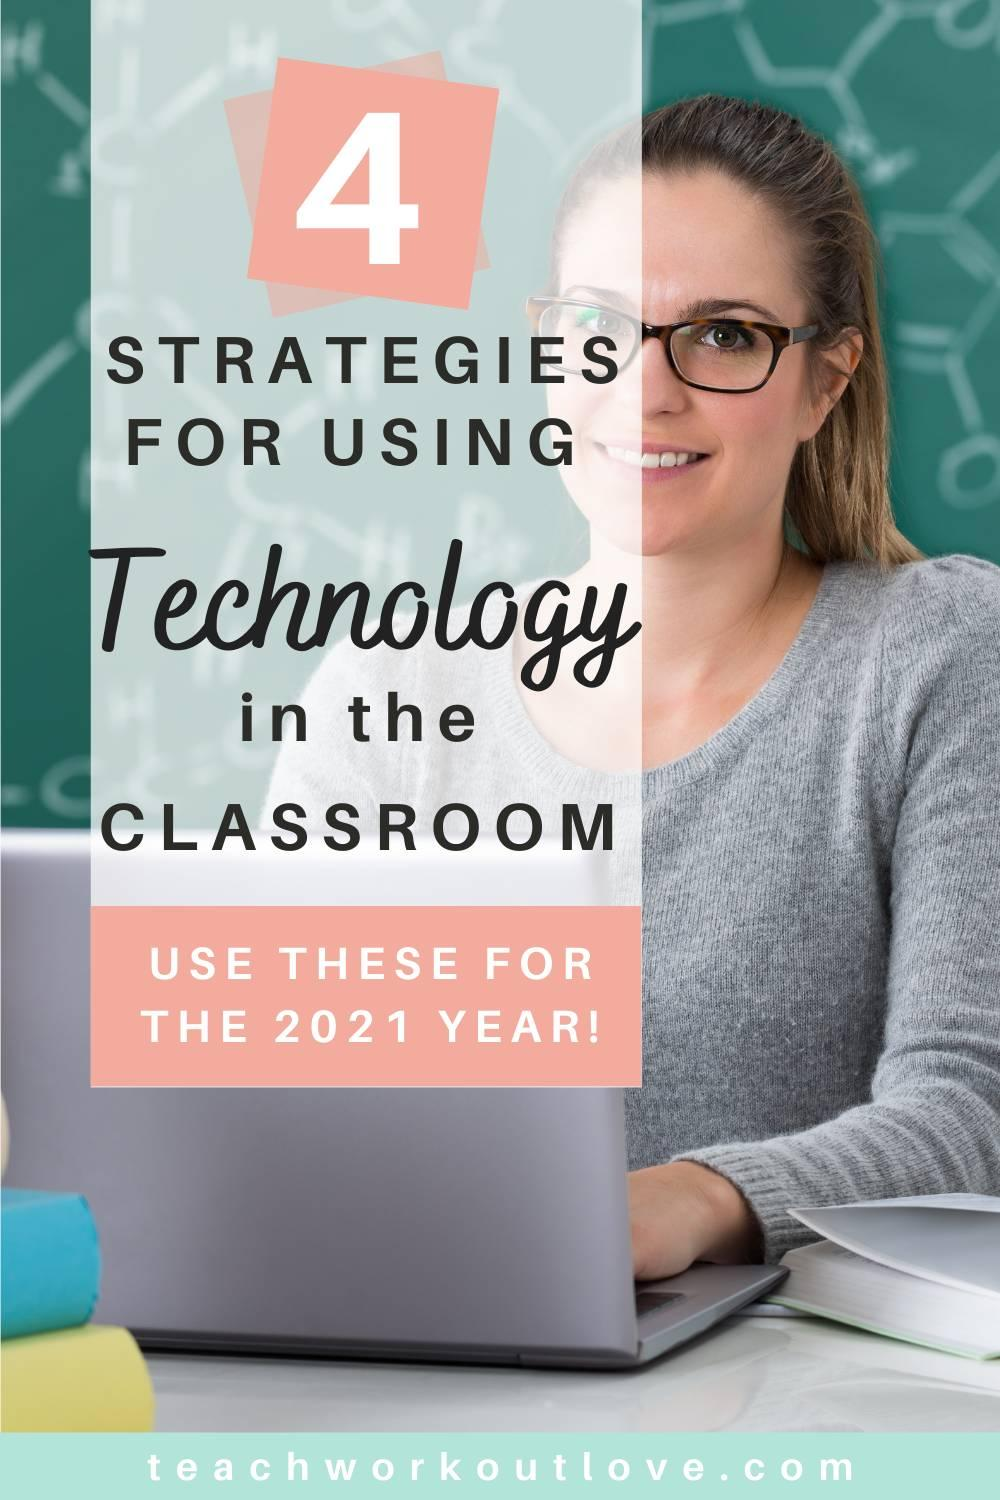 Strategies, tips, and Technology help to succeed in the classroom. Learn the best ways of How to Managing Technology Use In The Classroom.